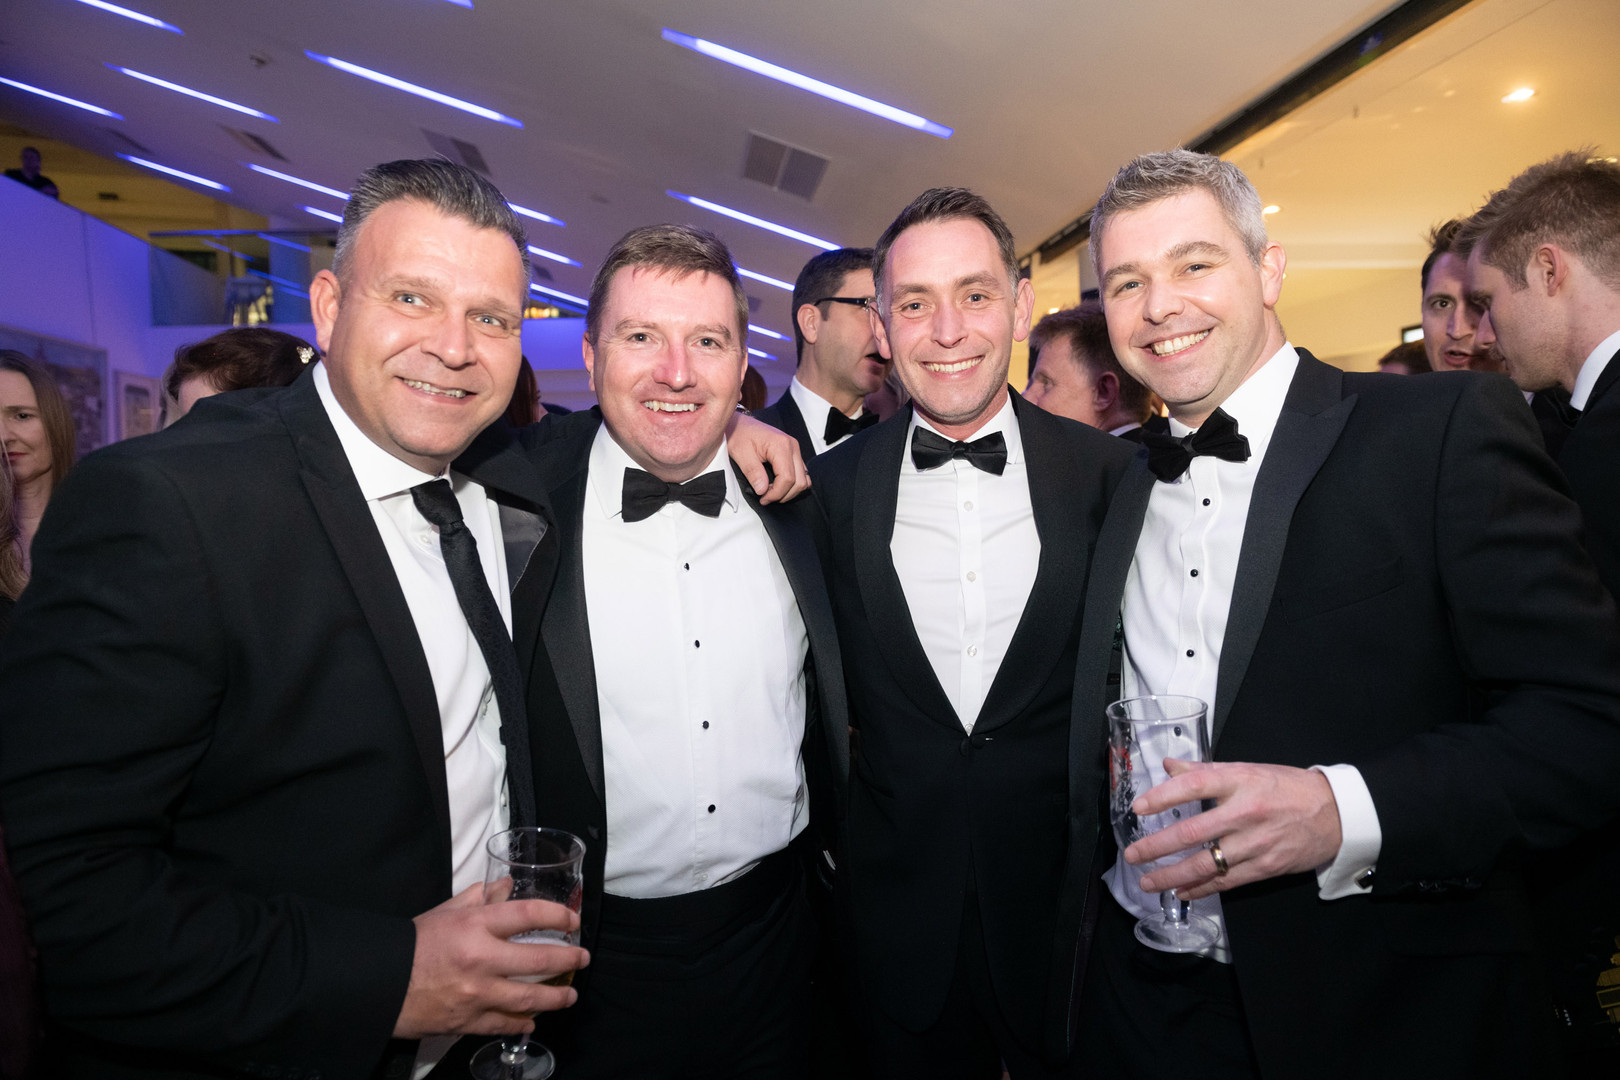 SurreyPropertyAwards_Nov2019_186.jpg